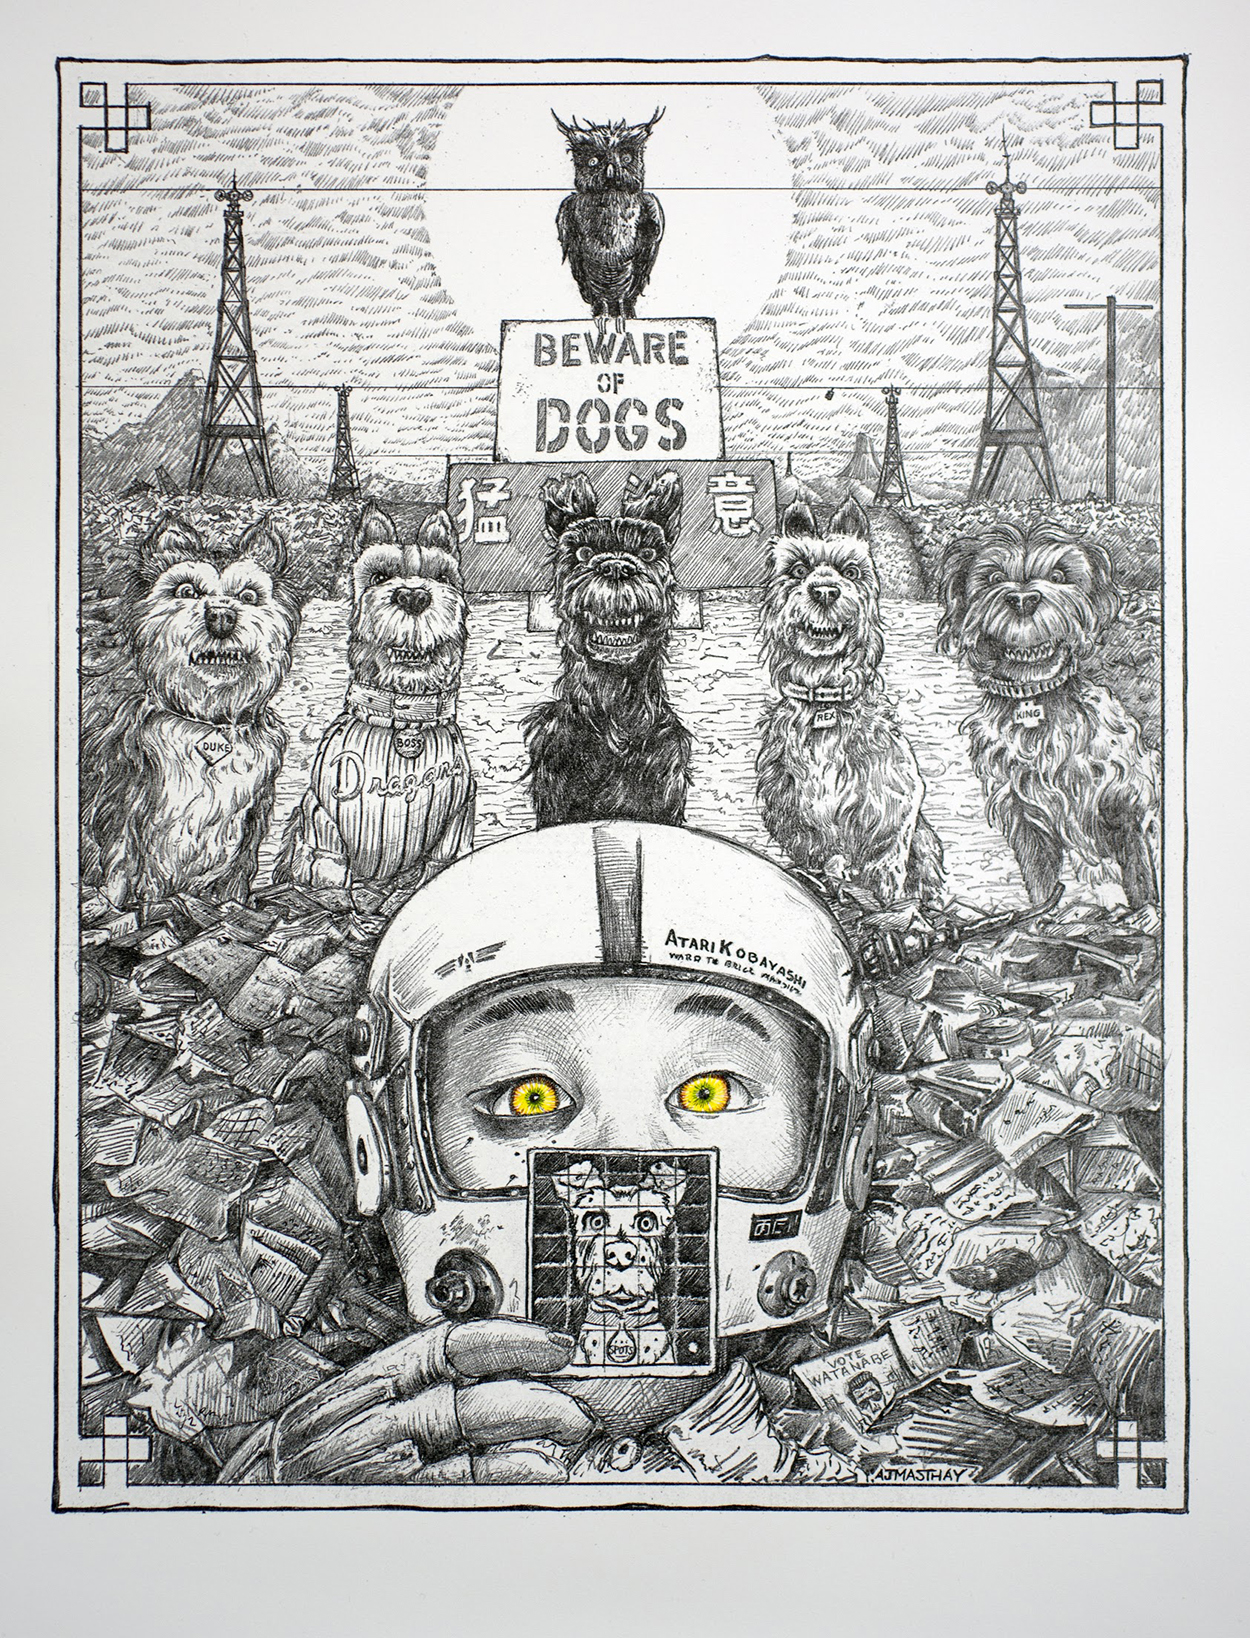 Isle of Dogs Wes Anderson AJ Masthay letterpress print